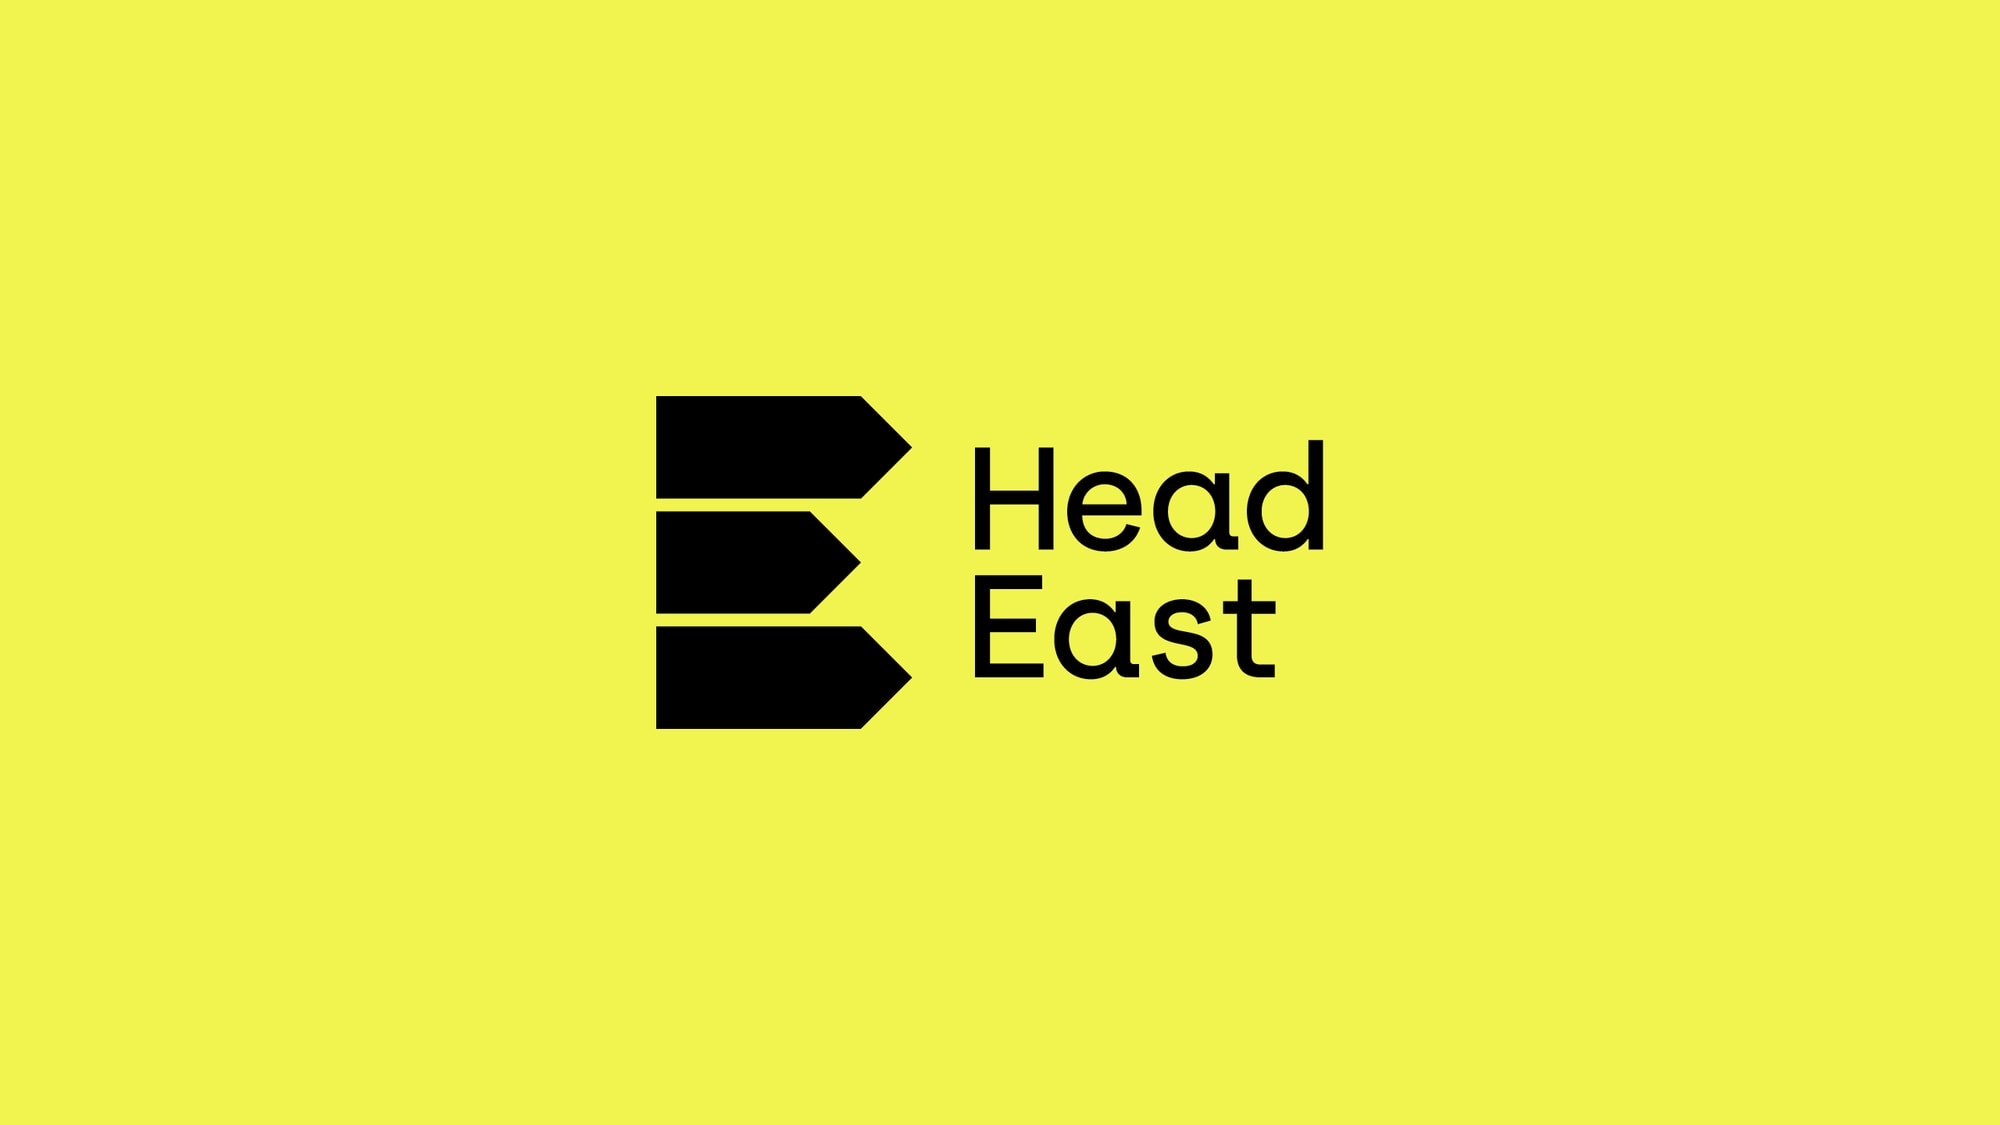 Head East brand identity by The Click